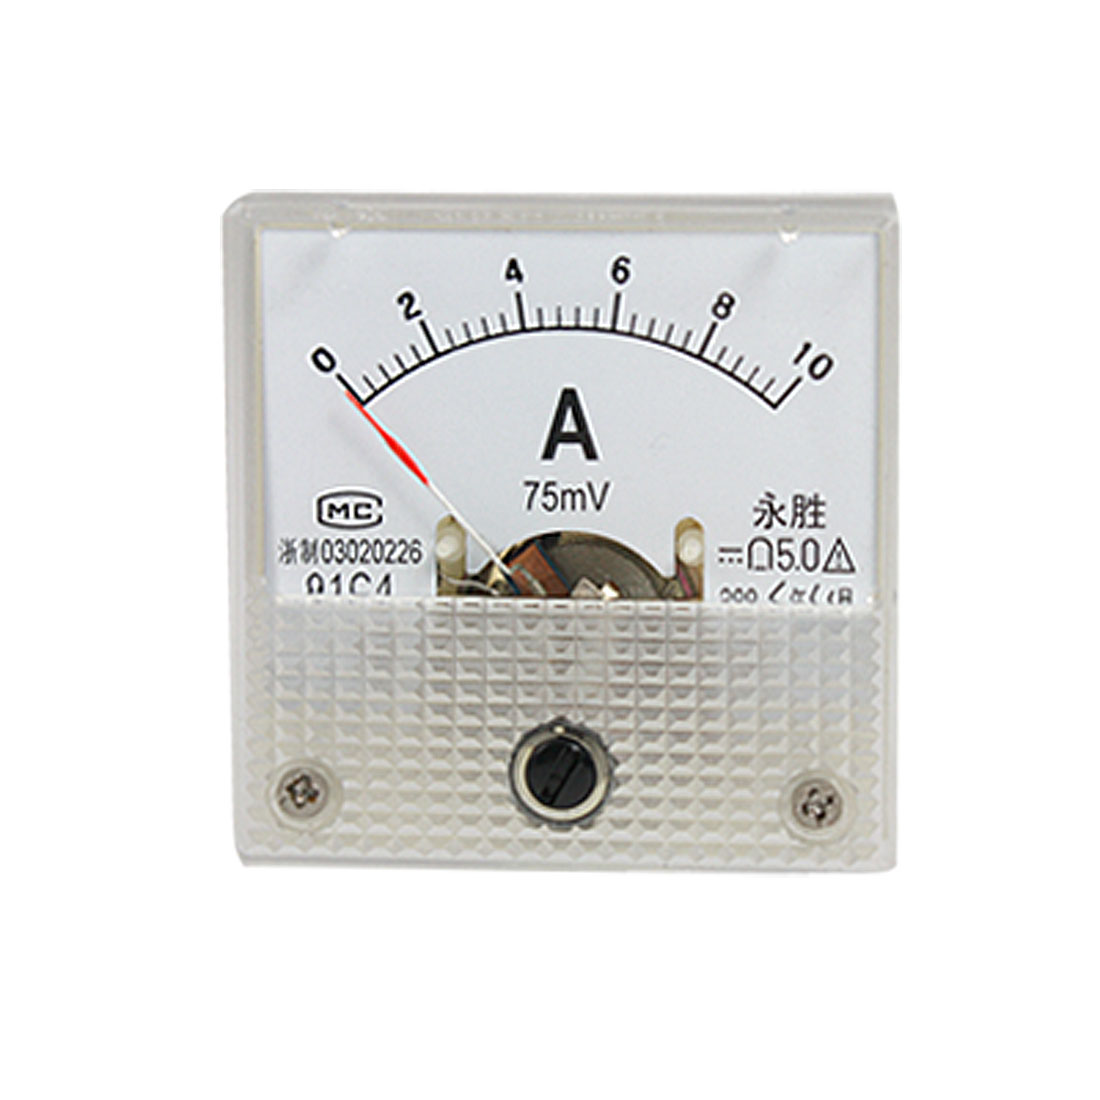 91C4 DC 10A 75mV Current Analog Pointer Square Panel Meter Ammeter